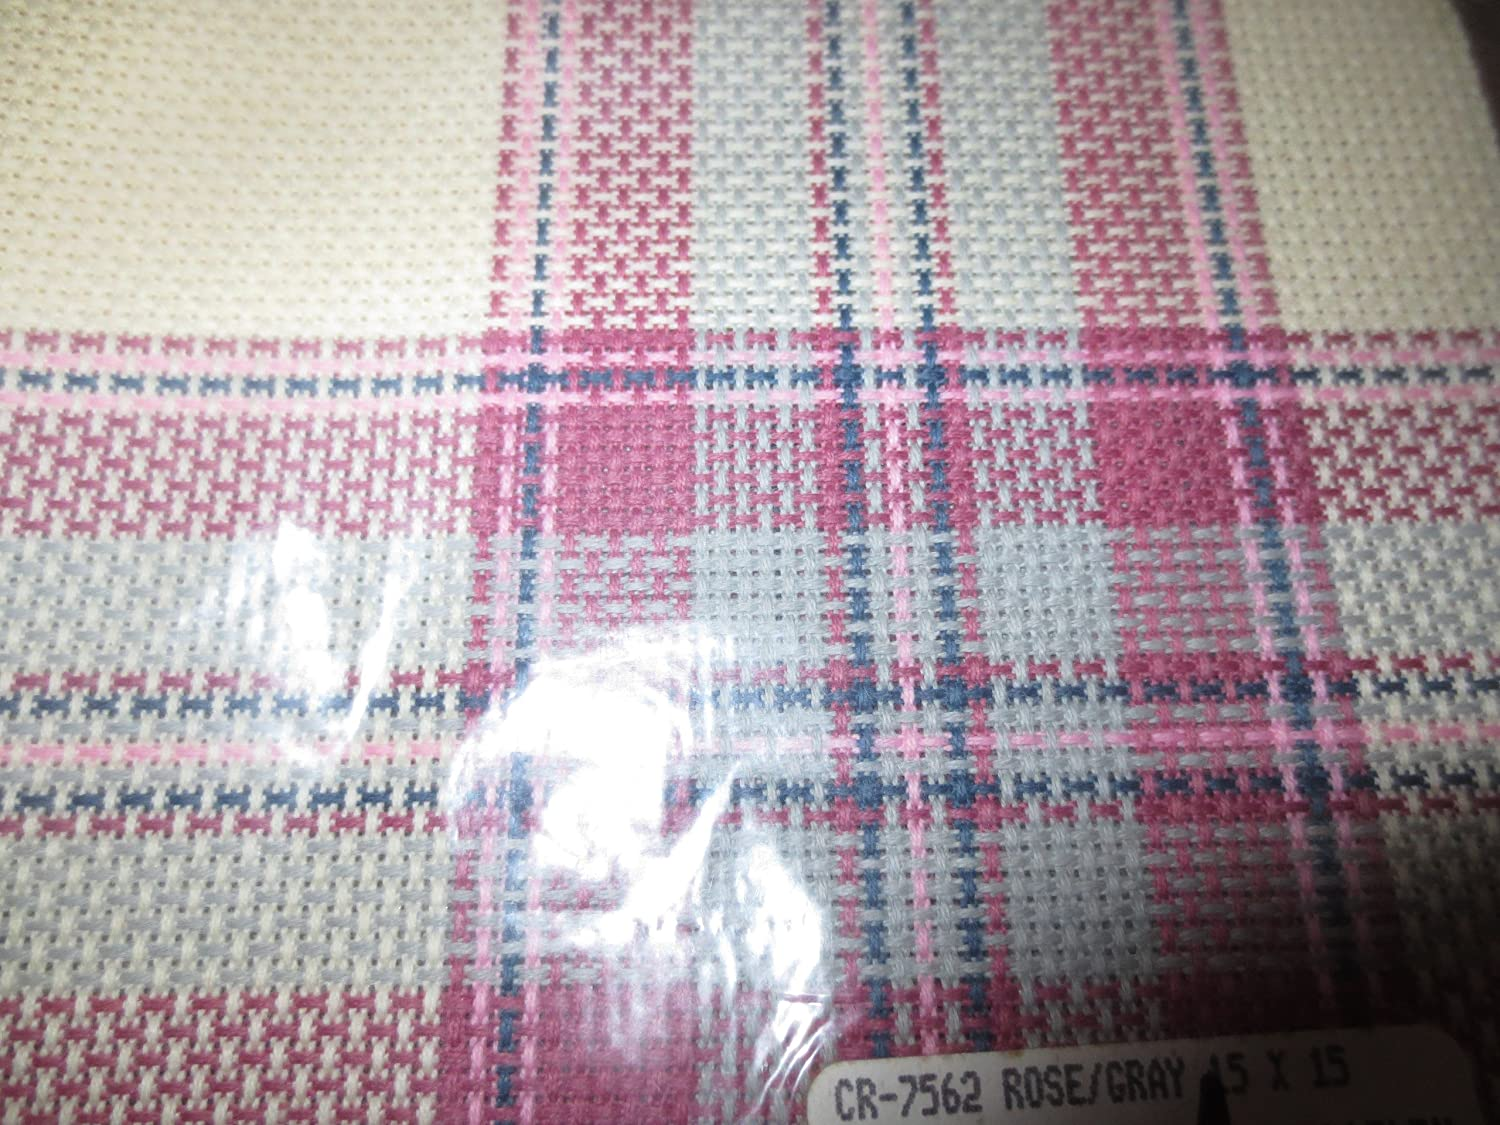 Charles Craft Hopscotch Tartan Plaid -- Aida 14 Count -- 15 x 15 Rose/Gray